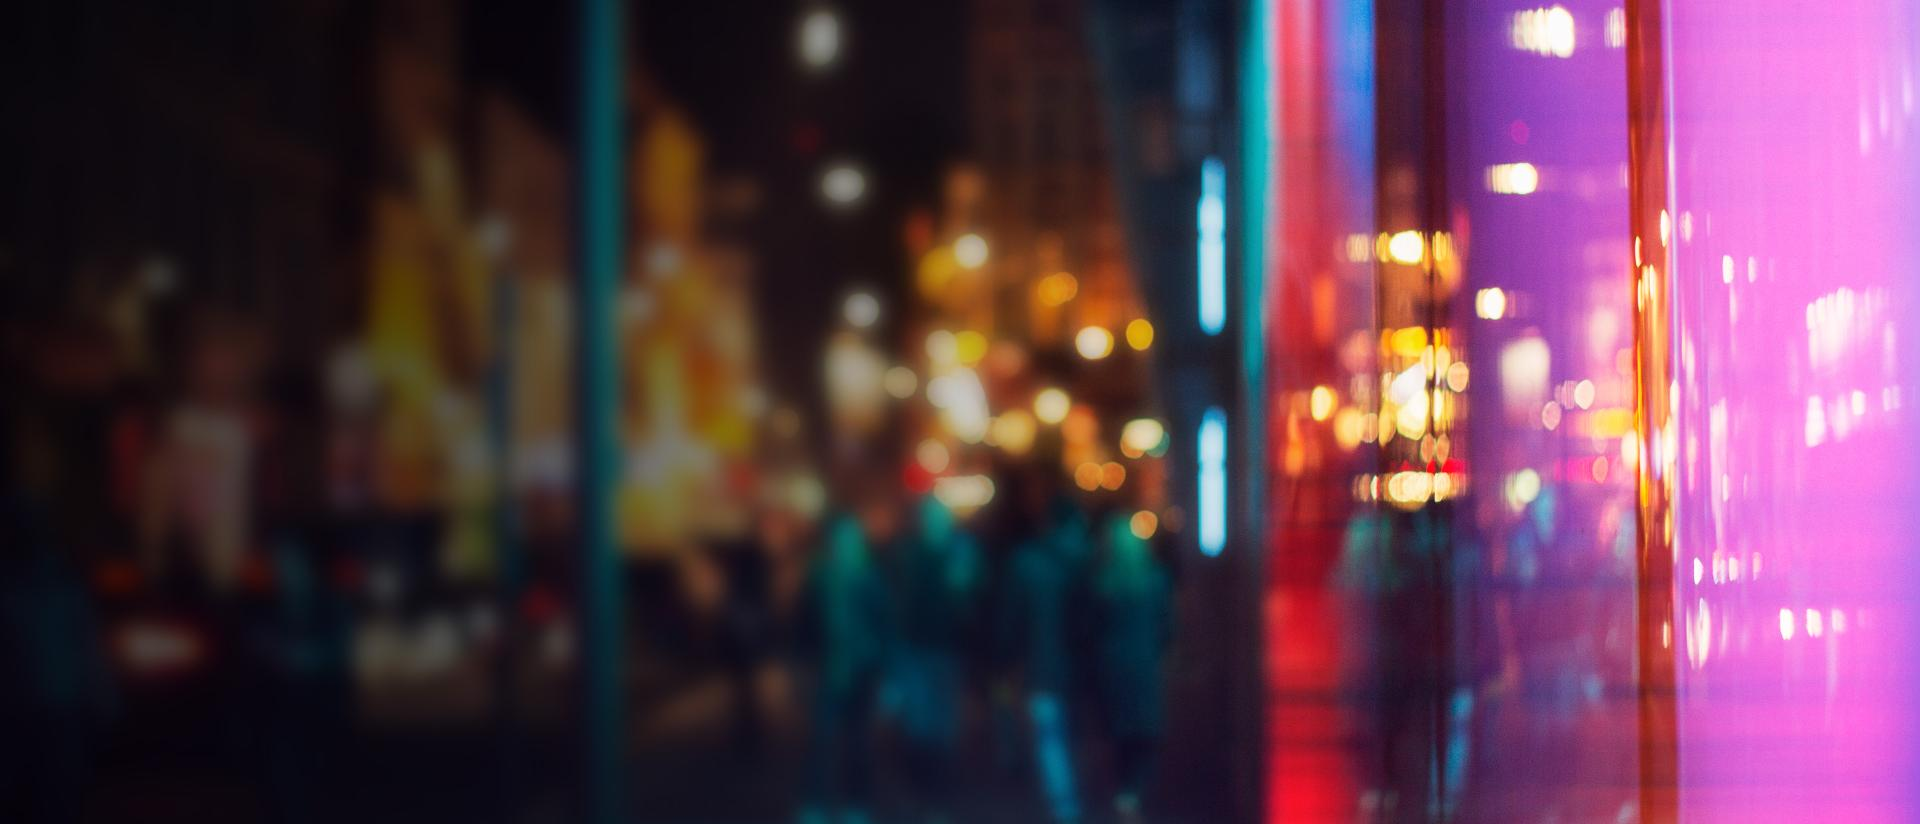 Photo of blurred city lights at night